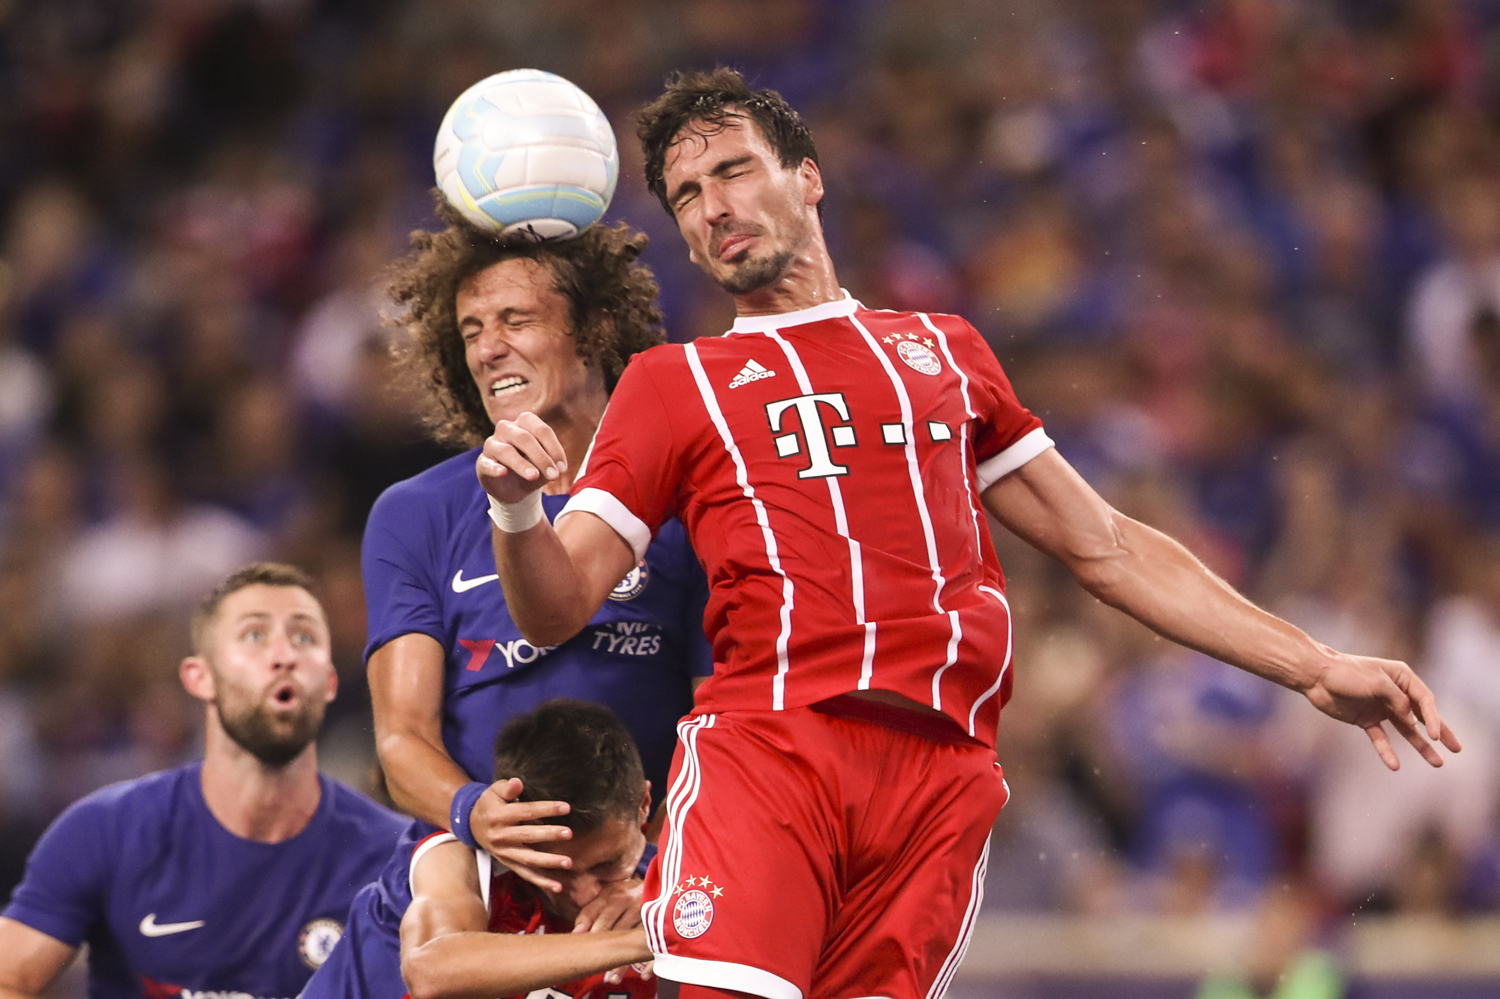 Soccer Football - Chelsea vs Bayern Munich - International Champions Cup - Singapore - July 25, 2017 Chelsea's David Luiz in action against Bayern Munich's Mats Hummels REUTERS/Yong Teck Lim